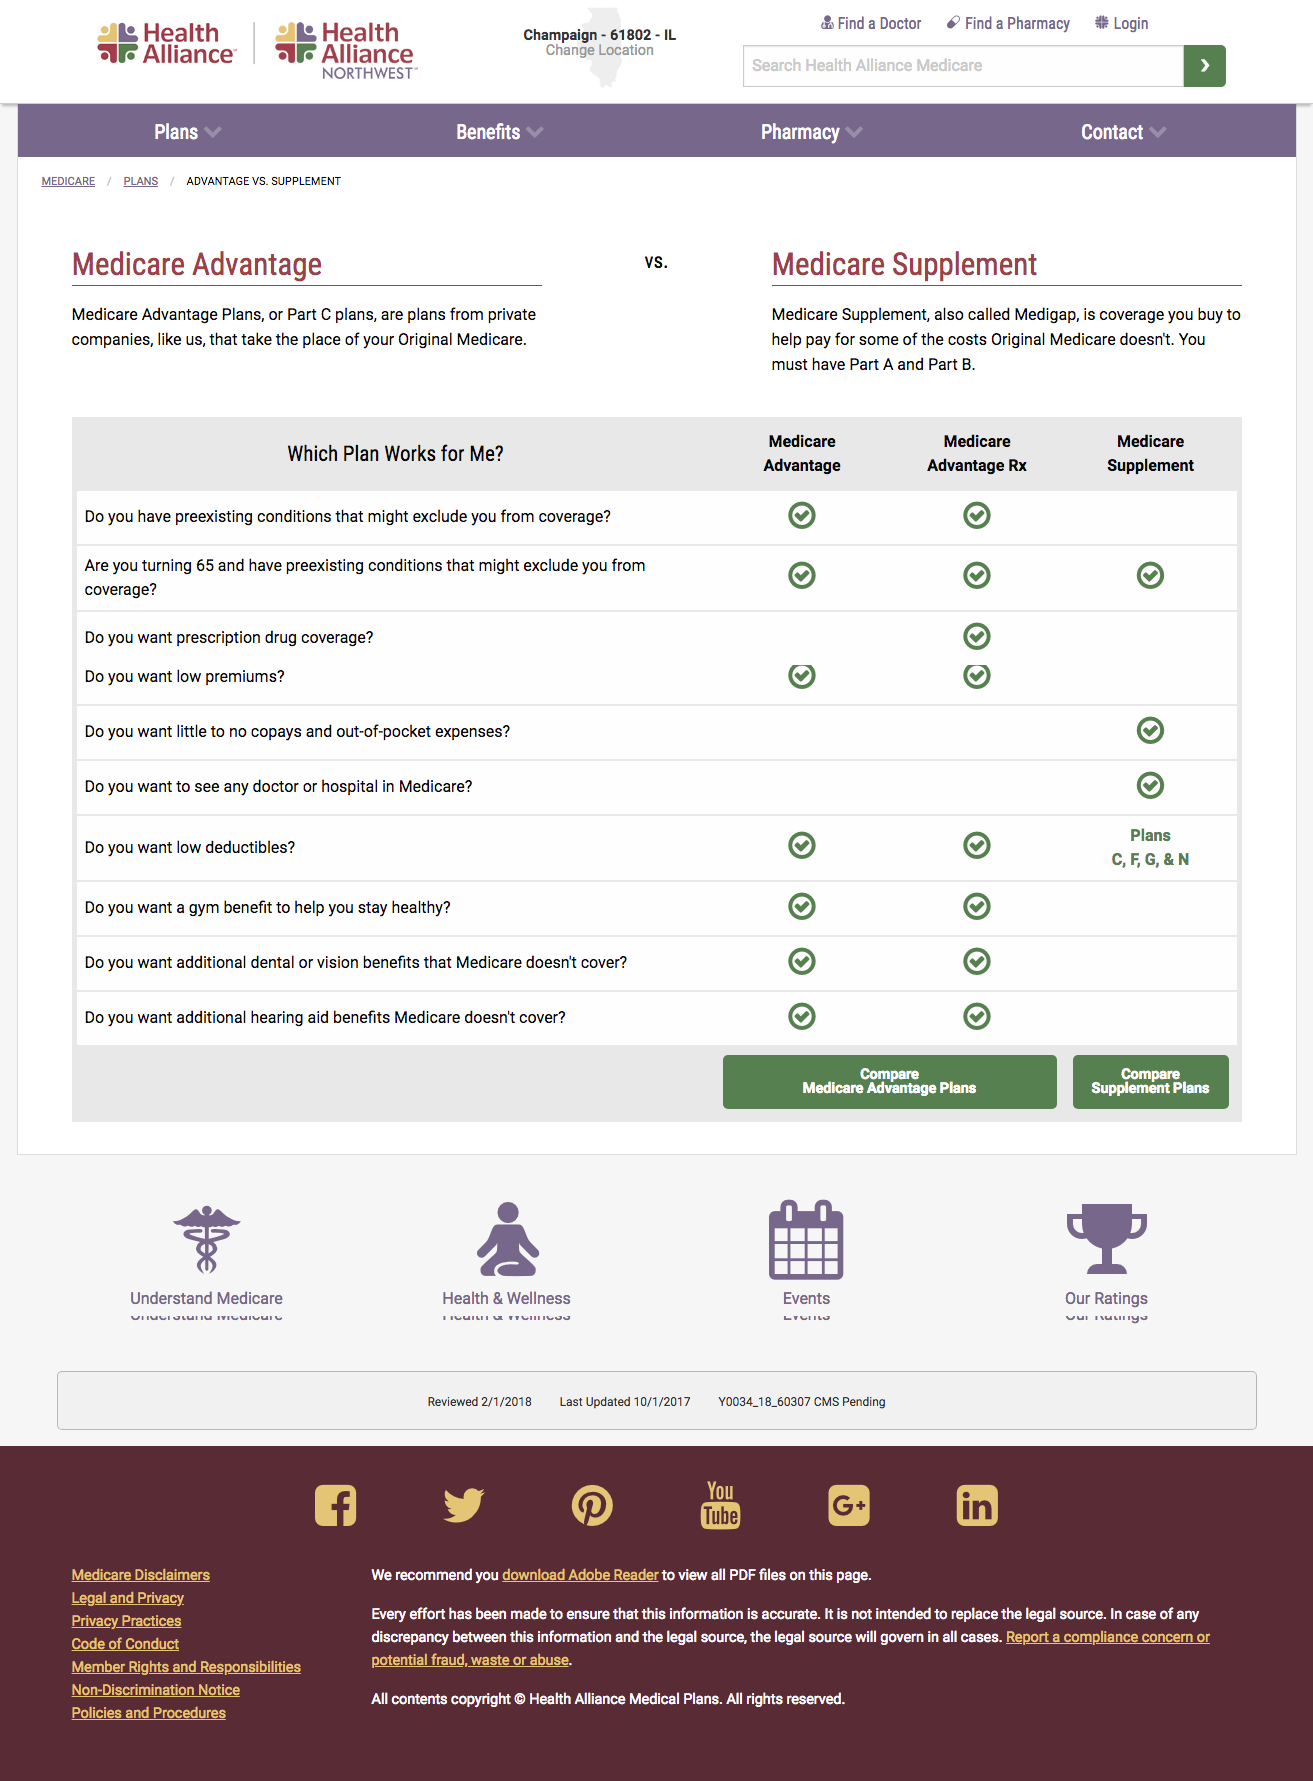 Medicare Advantage vs. Supplement page